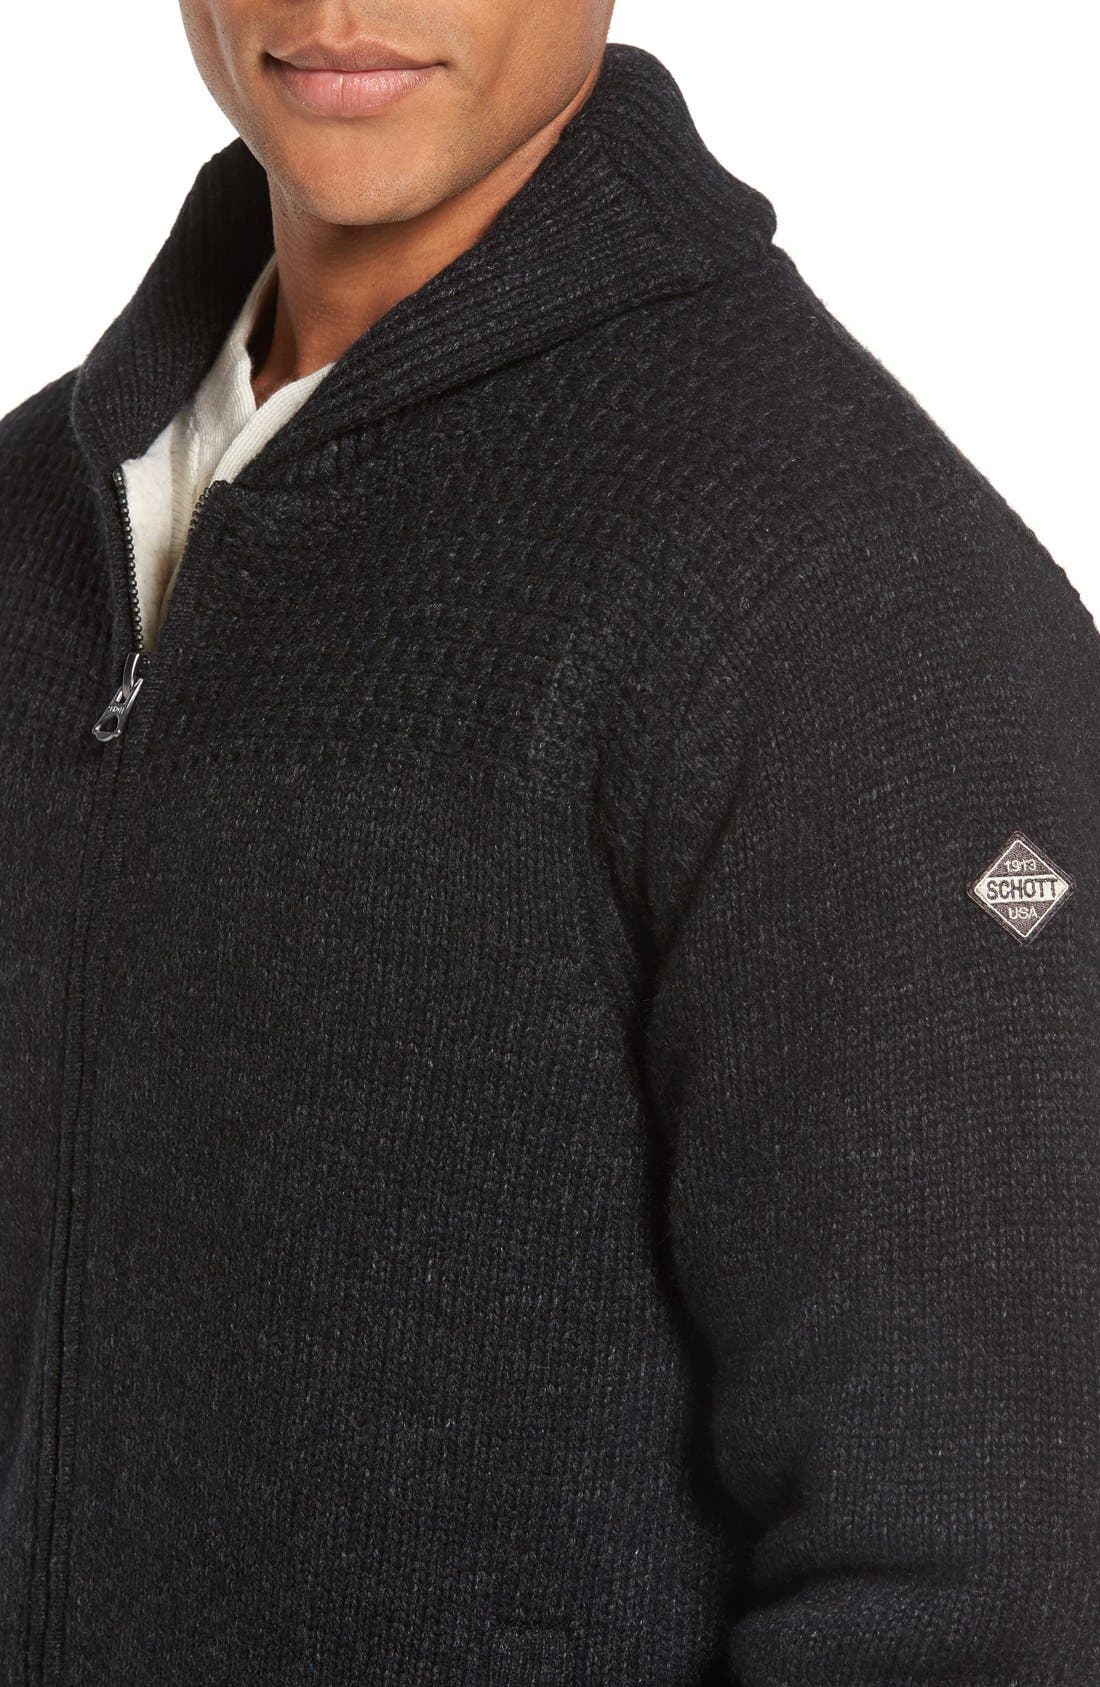 Lined Wool Zip Sweater,                             Alternate thumbnail 8, color,                             BLACK